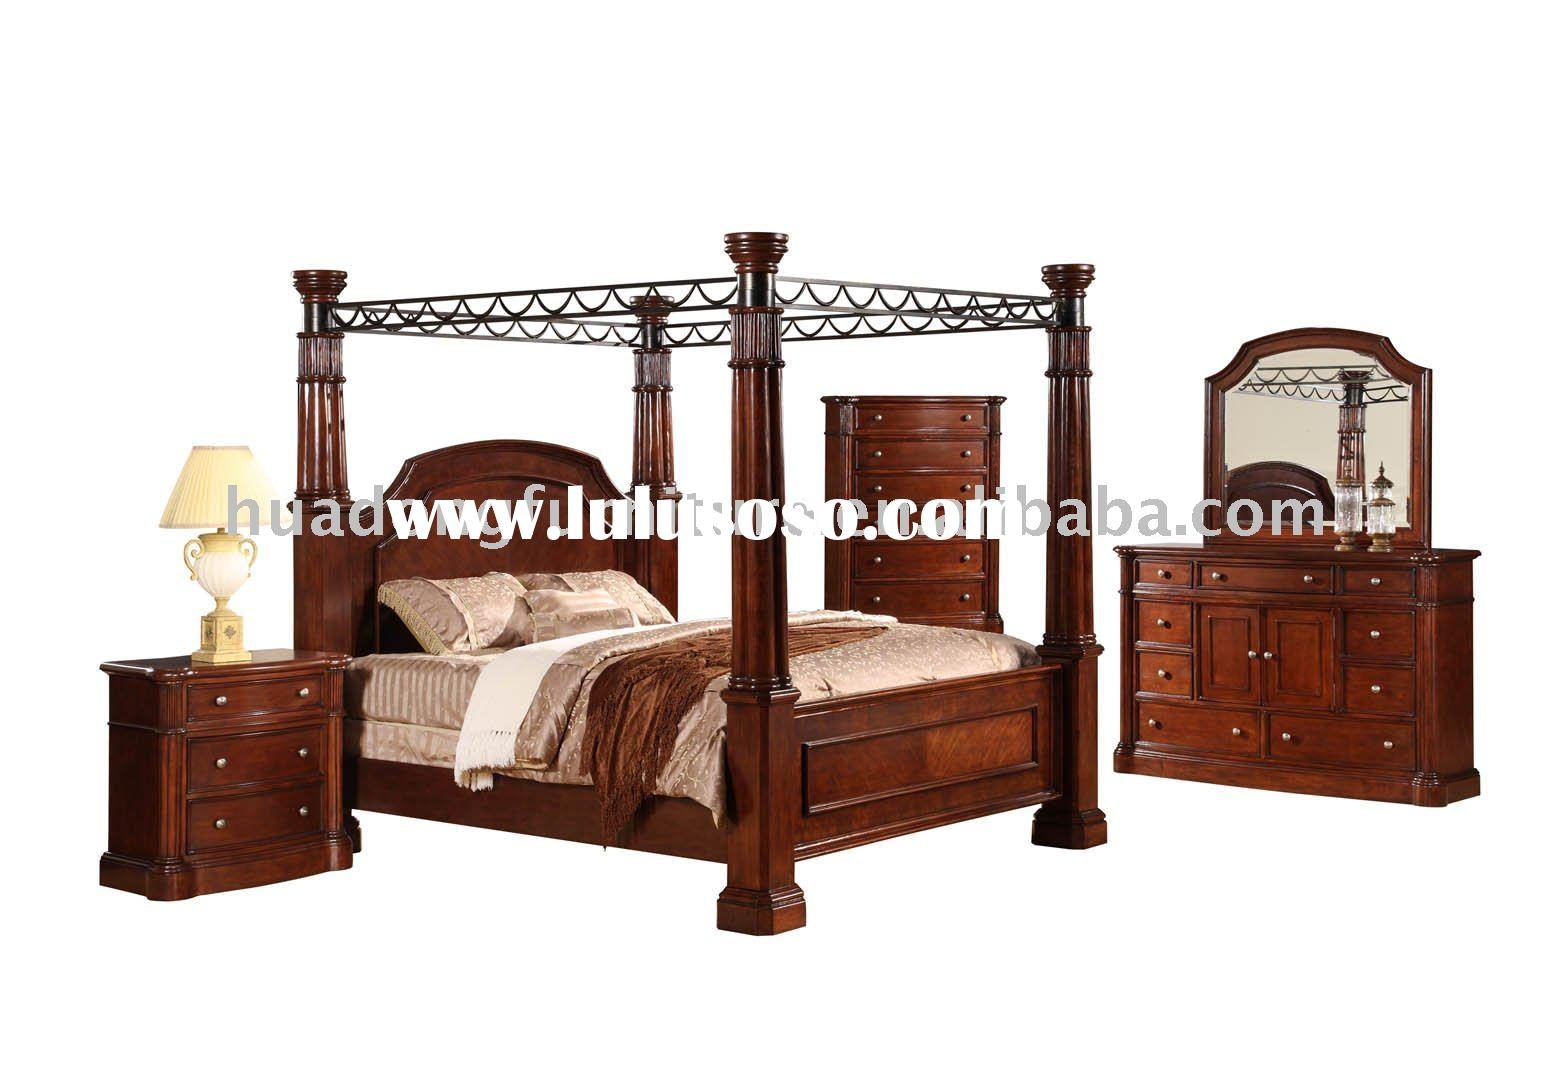 Very Impressive portraiture of 907 MDF and solid wood bedroom furniture for sale Price China  with #3E1C12 color and 1552x1070 pixels